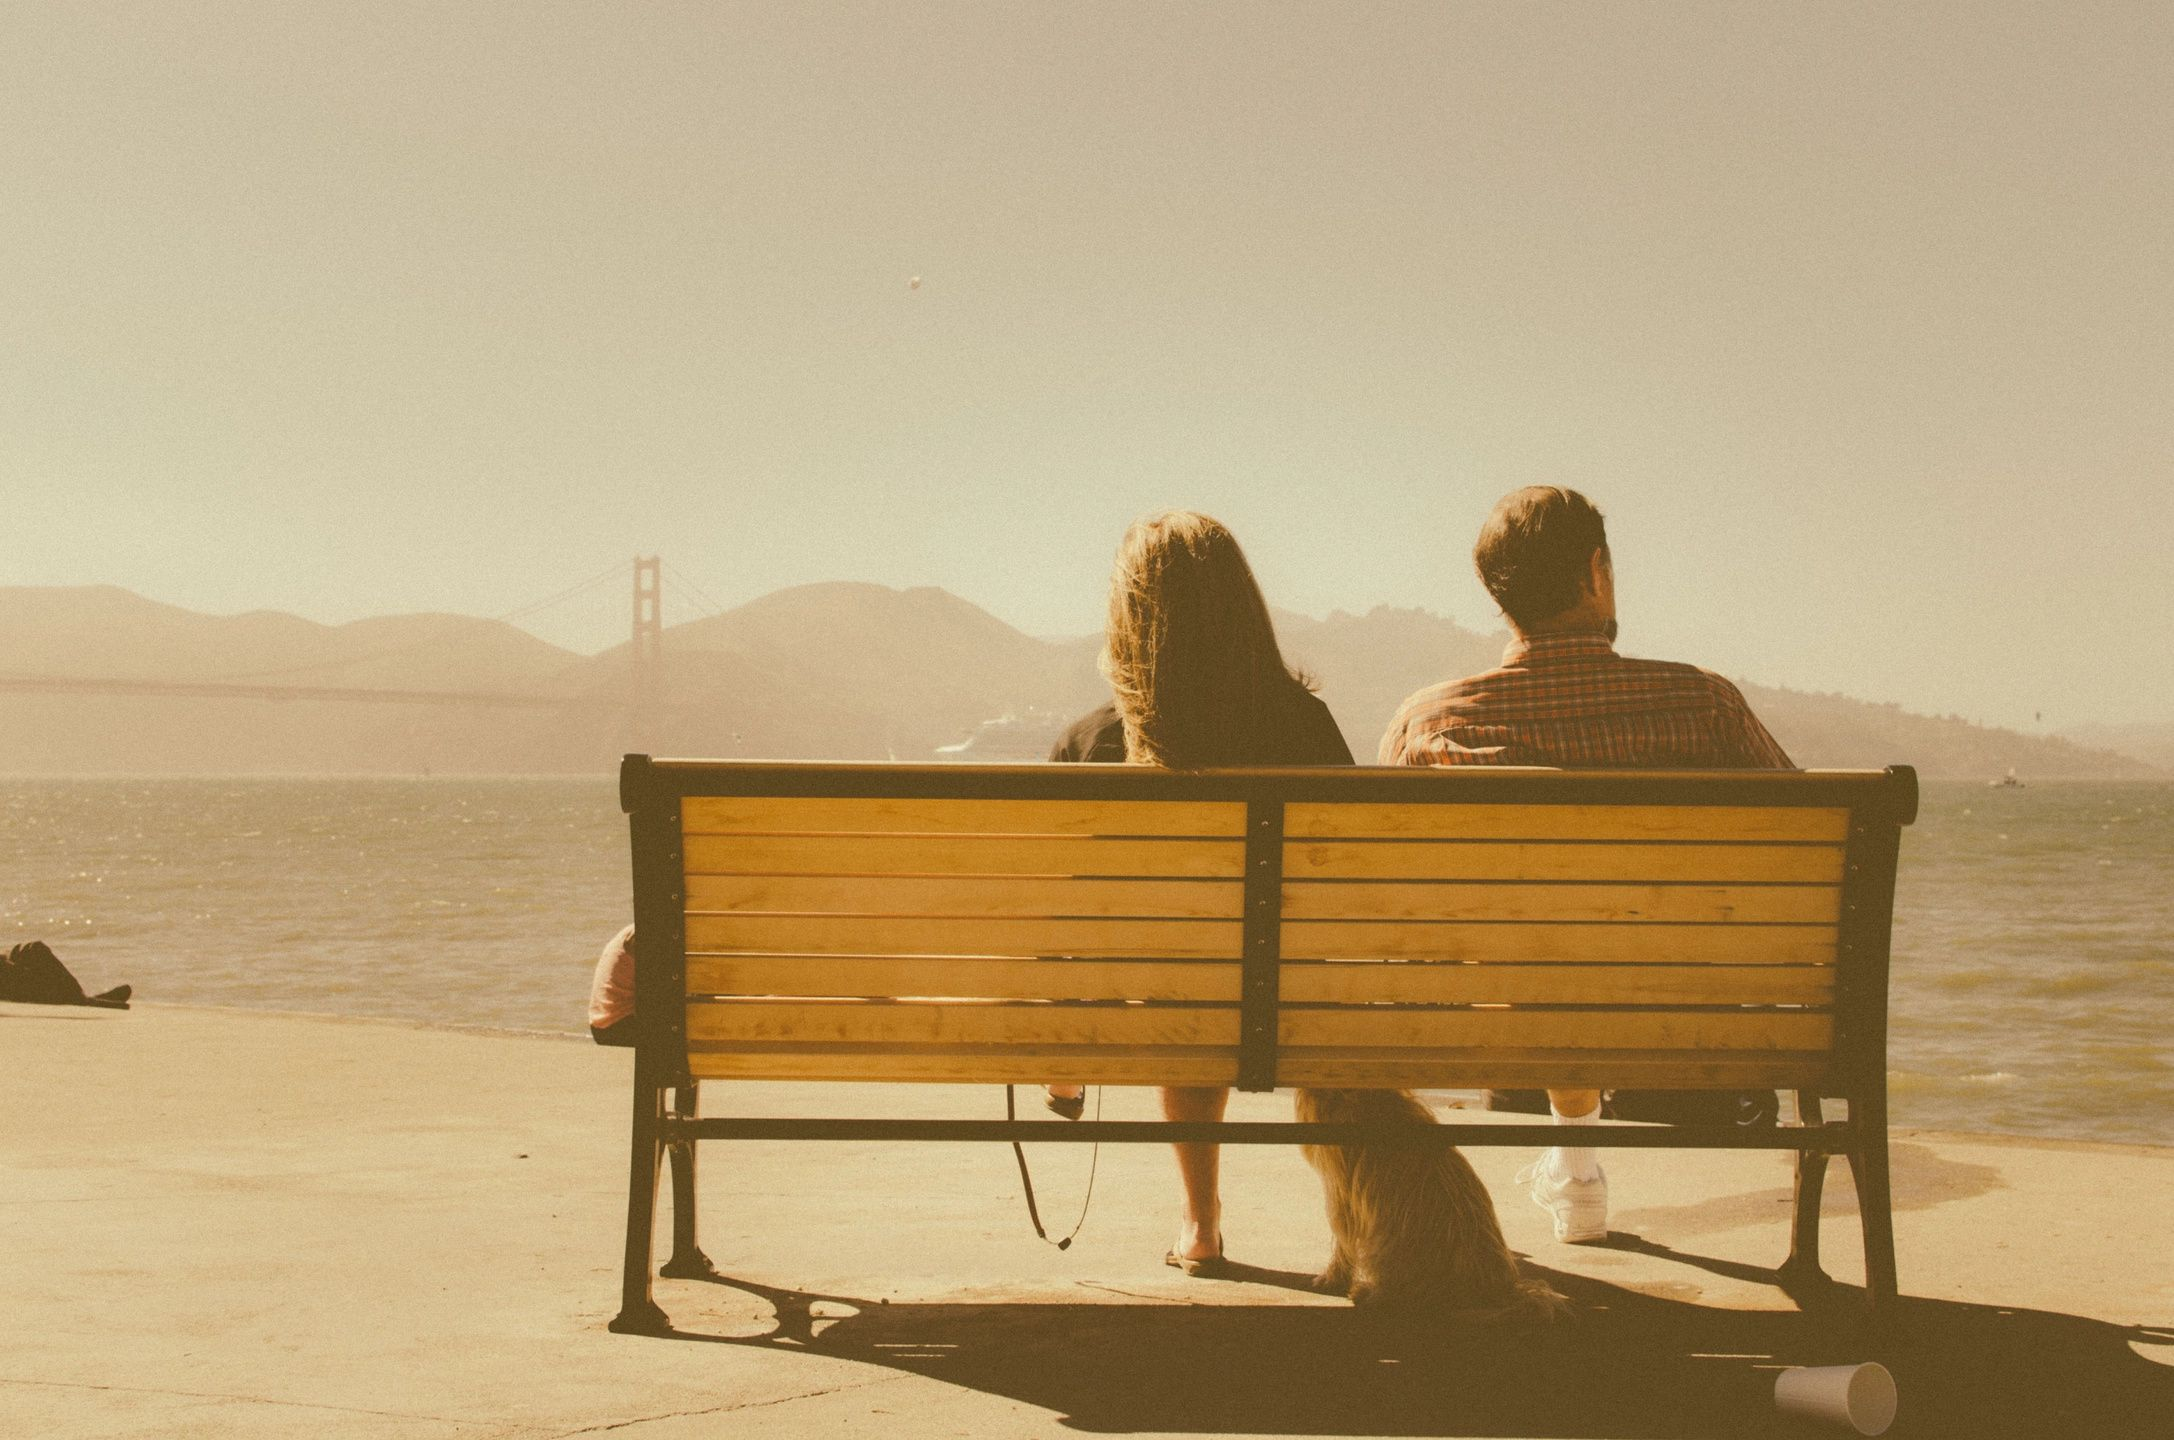 A young couple sits on a park bench that overlooks a city skyline.